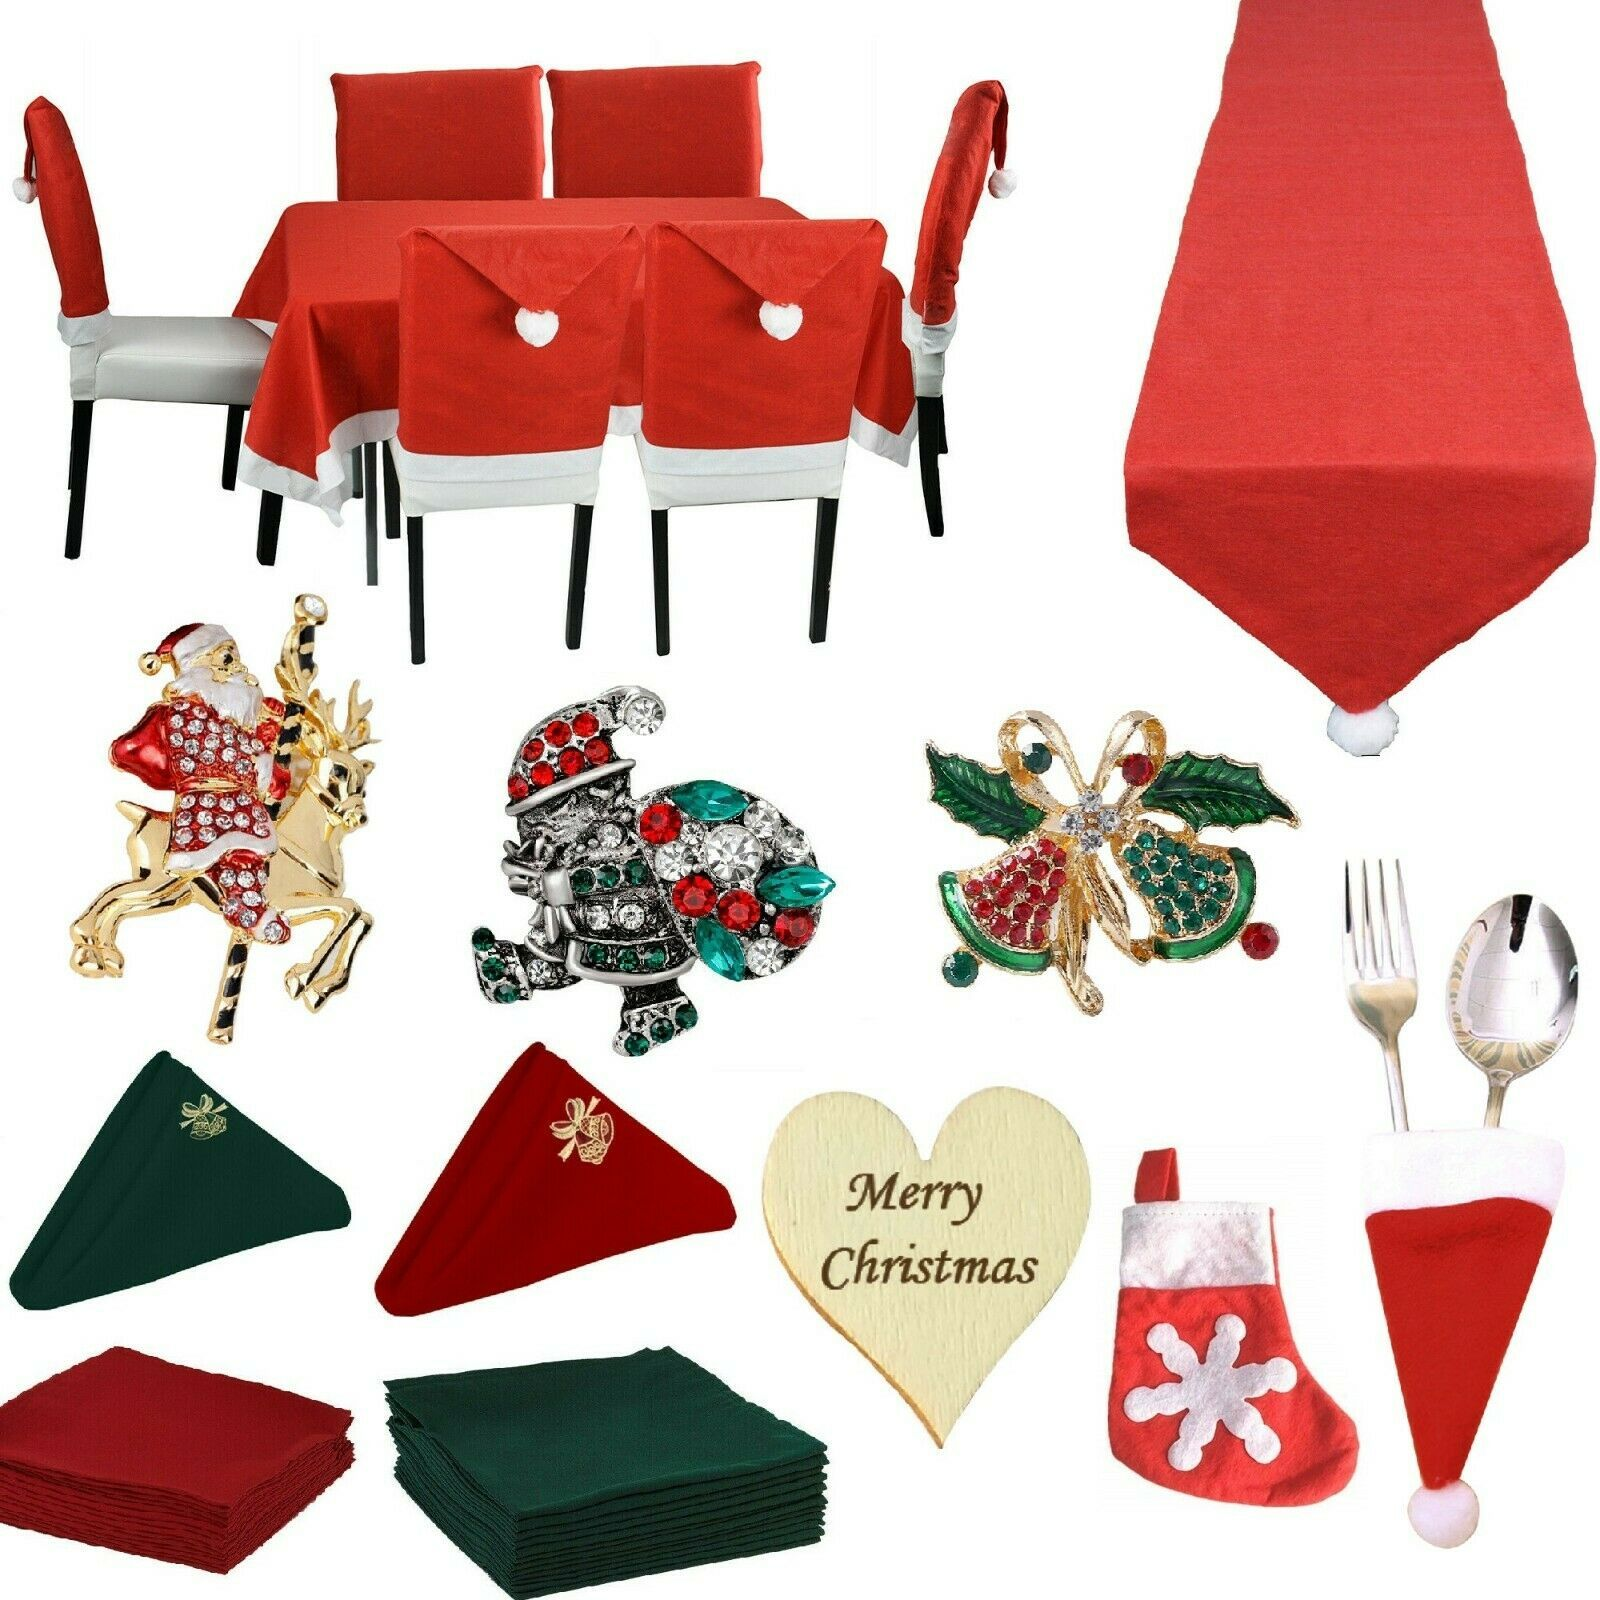 Primary image for Christmas Tableware - Tablecloth Table Runner Napkins Chair Cover Cutlery Holder